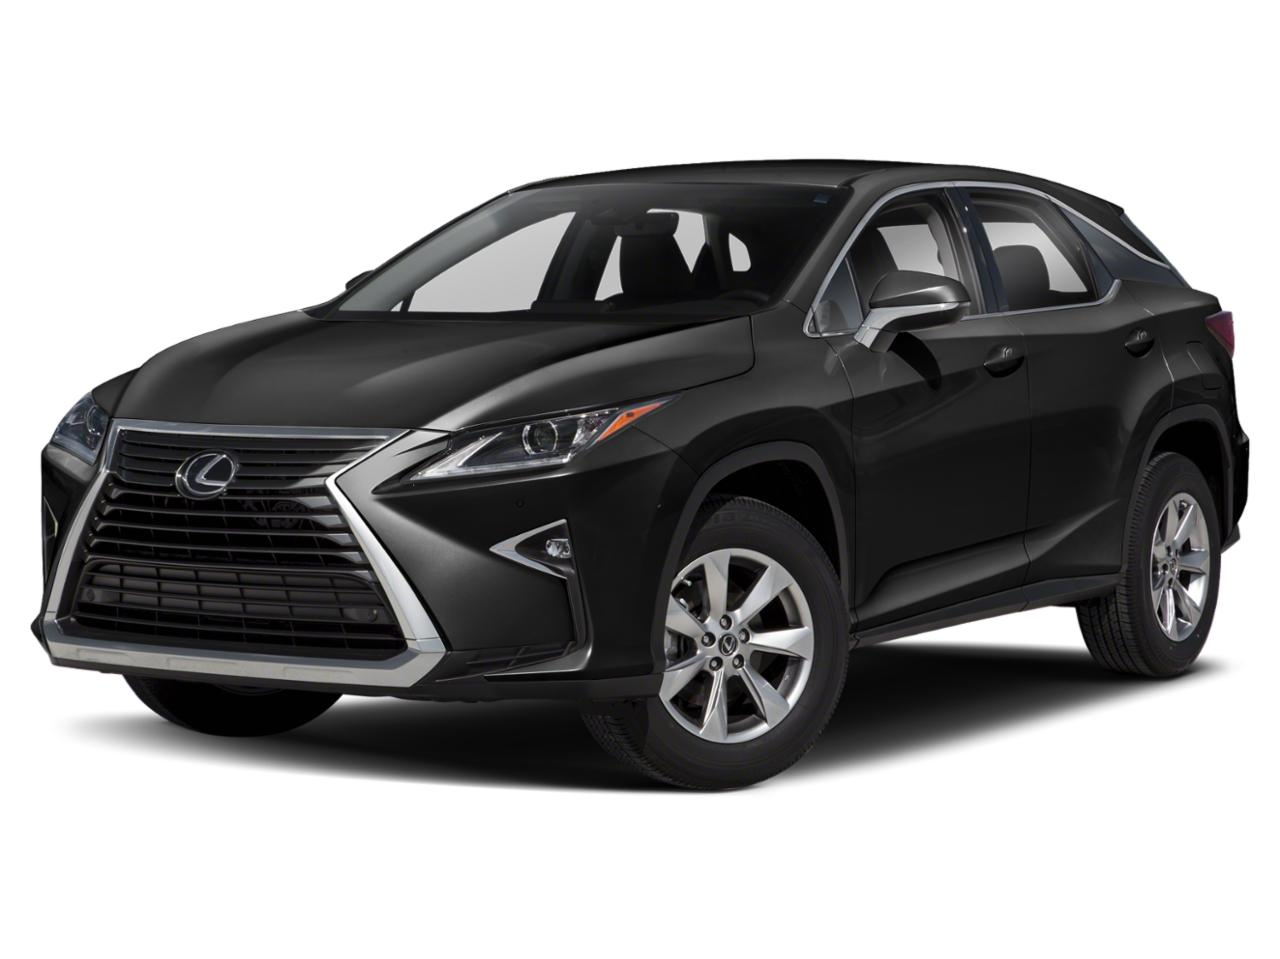 2019 Lexus RX 350 Vehicle Photo in Tucson, AZ 85705